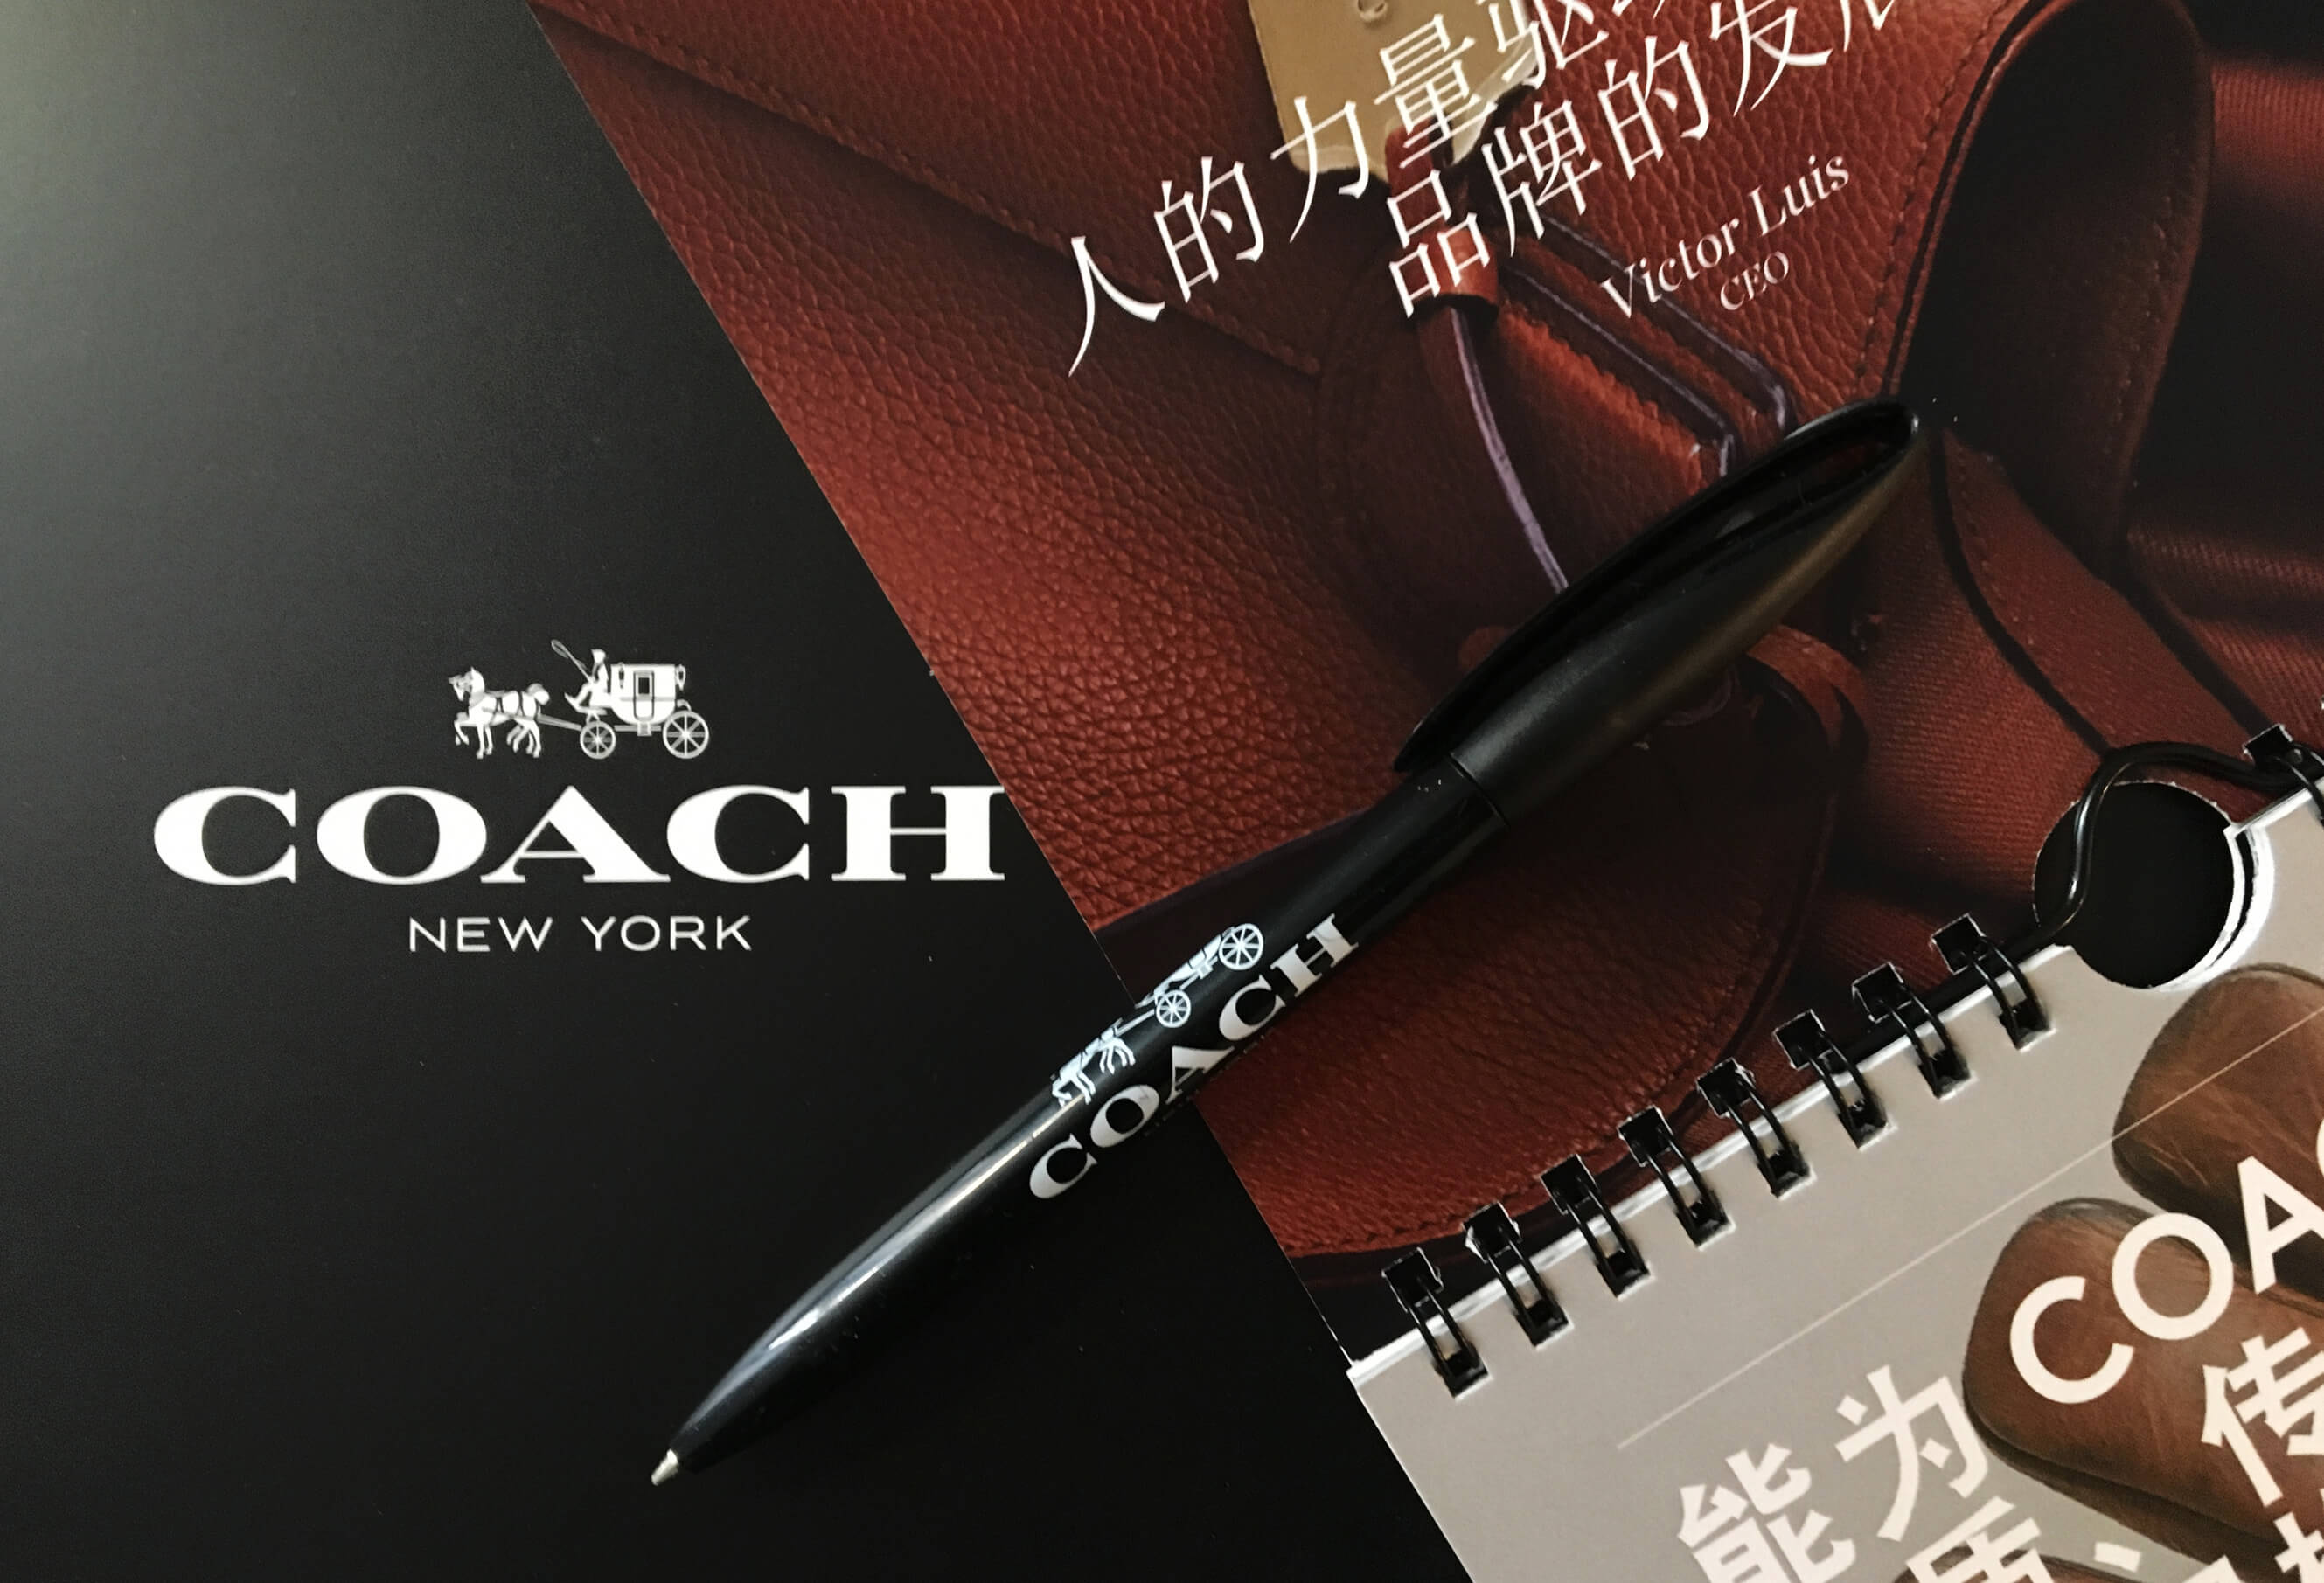 Dating coach new york